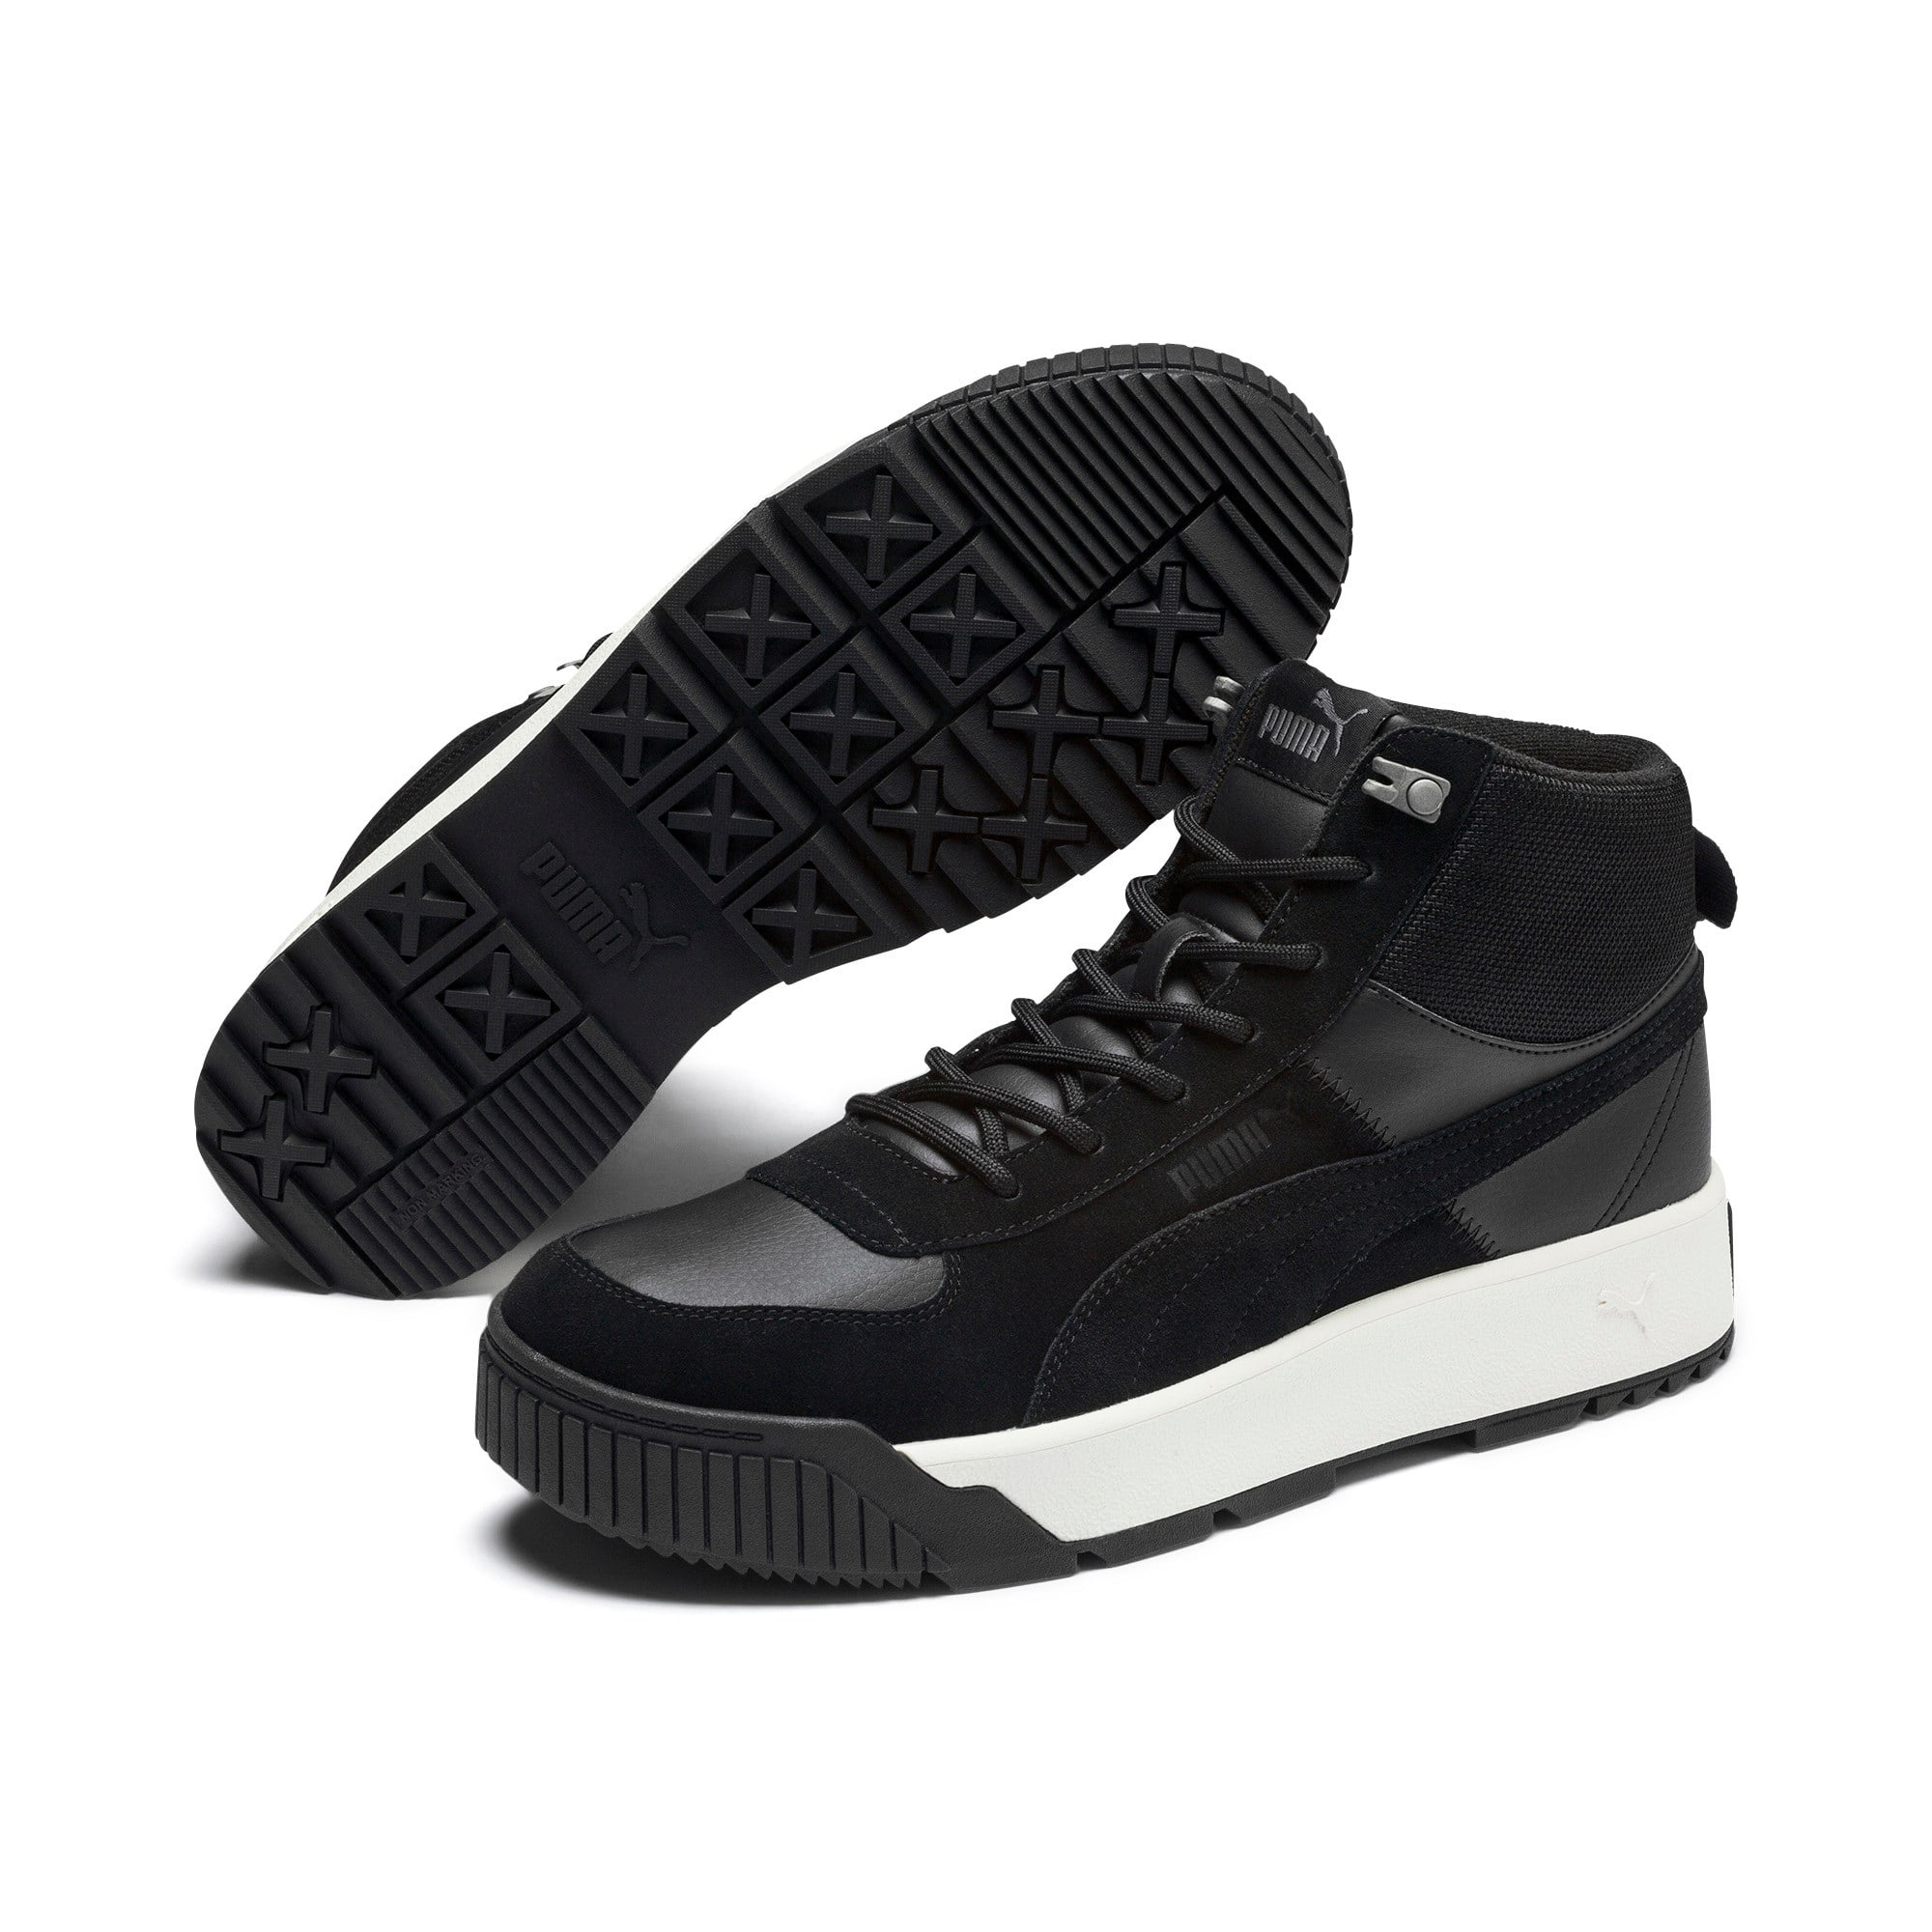 Thumbnail 3 of Basket bottine Tarrenz, Puma Black-Whisper White, medium